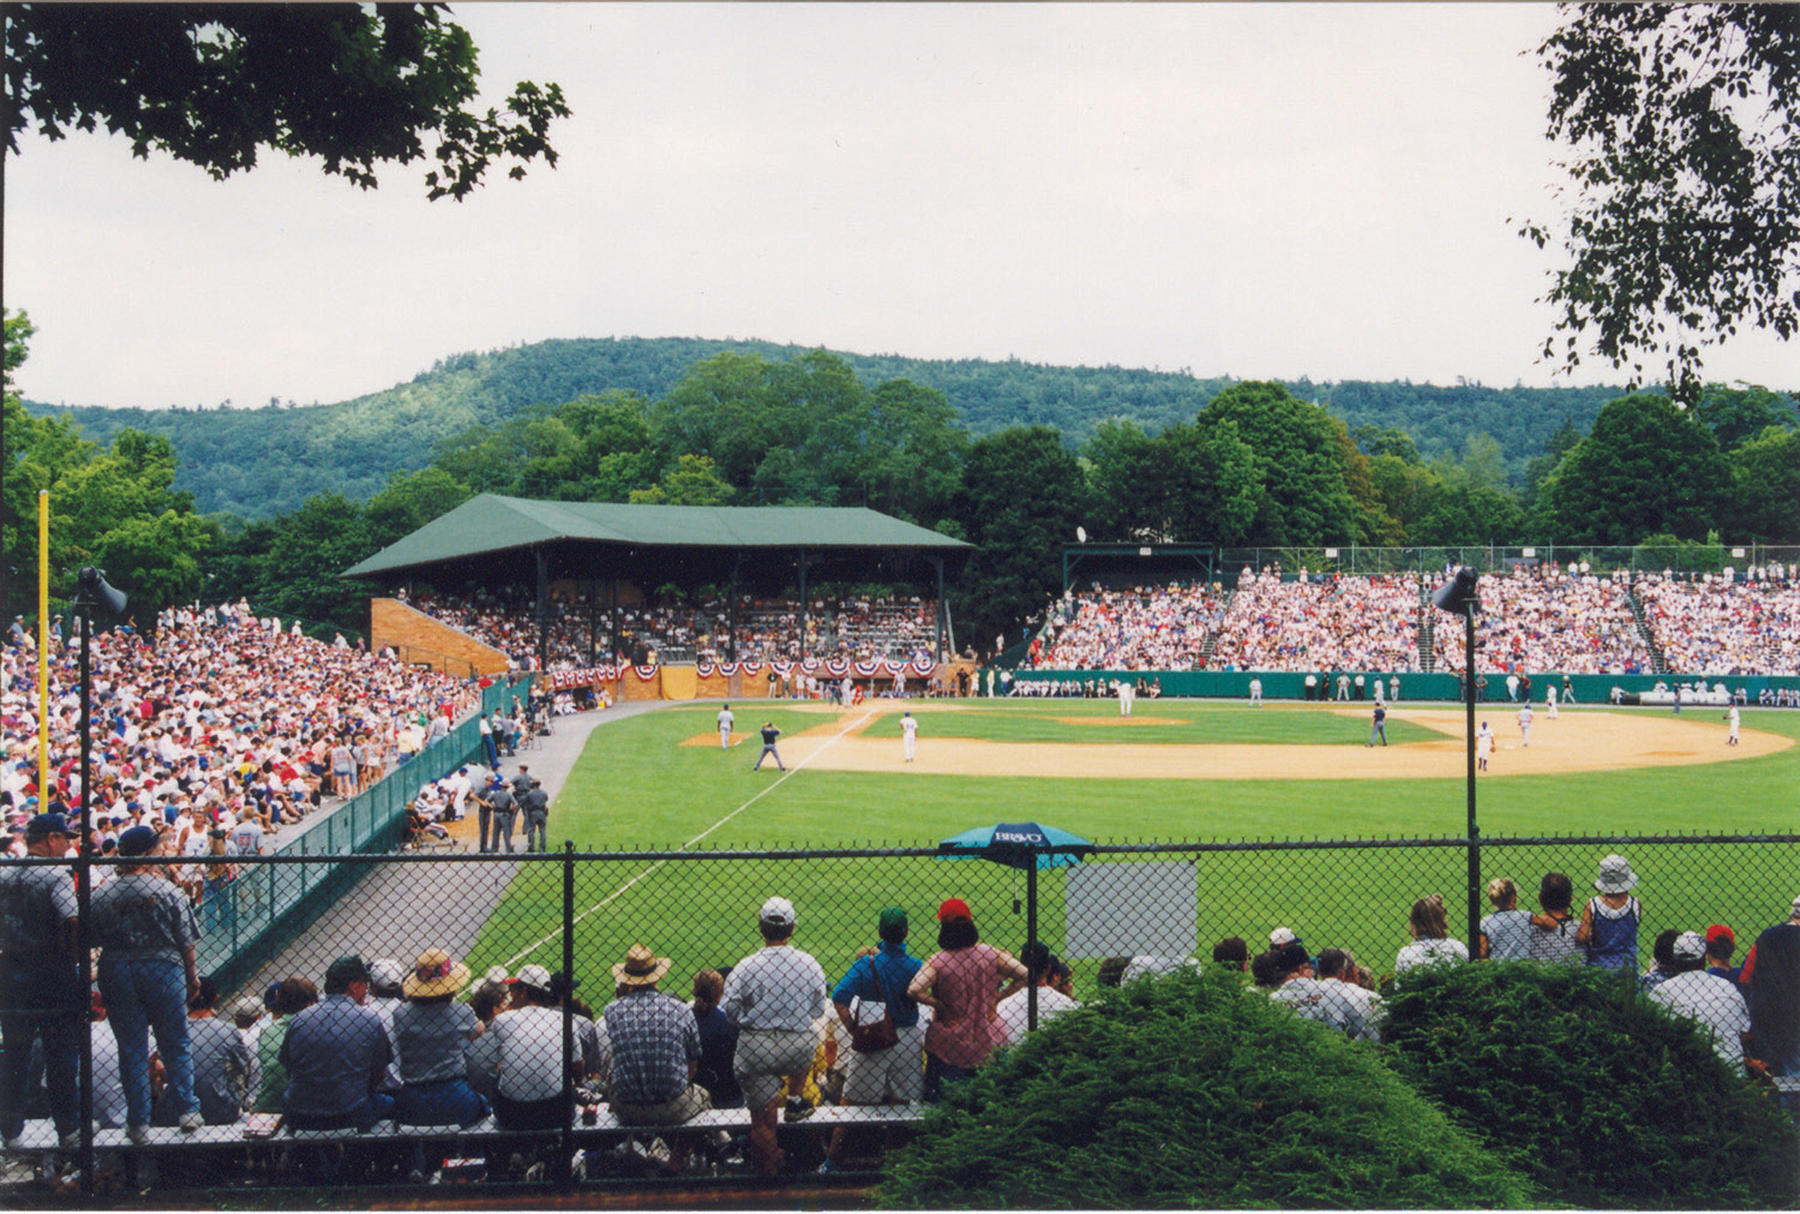 Each year, thousands of baseball fans fill the stands at Cooperstown's Doubleday Field to watch their favorite past and present major league players participate in an exhibition game. Doubleday hosted the Hall of Fame Game from 1939-2008, followed by the Hall of Fame Classic from 2009-present (Milo Stewart, Jr. / National Baseball Hall of Fame)